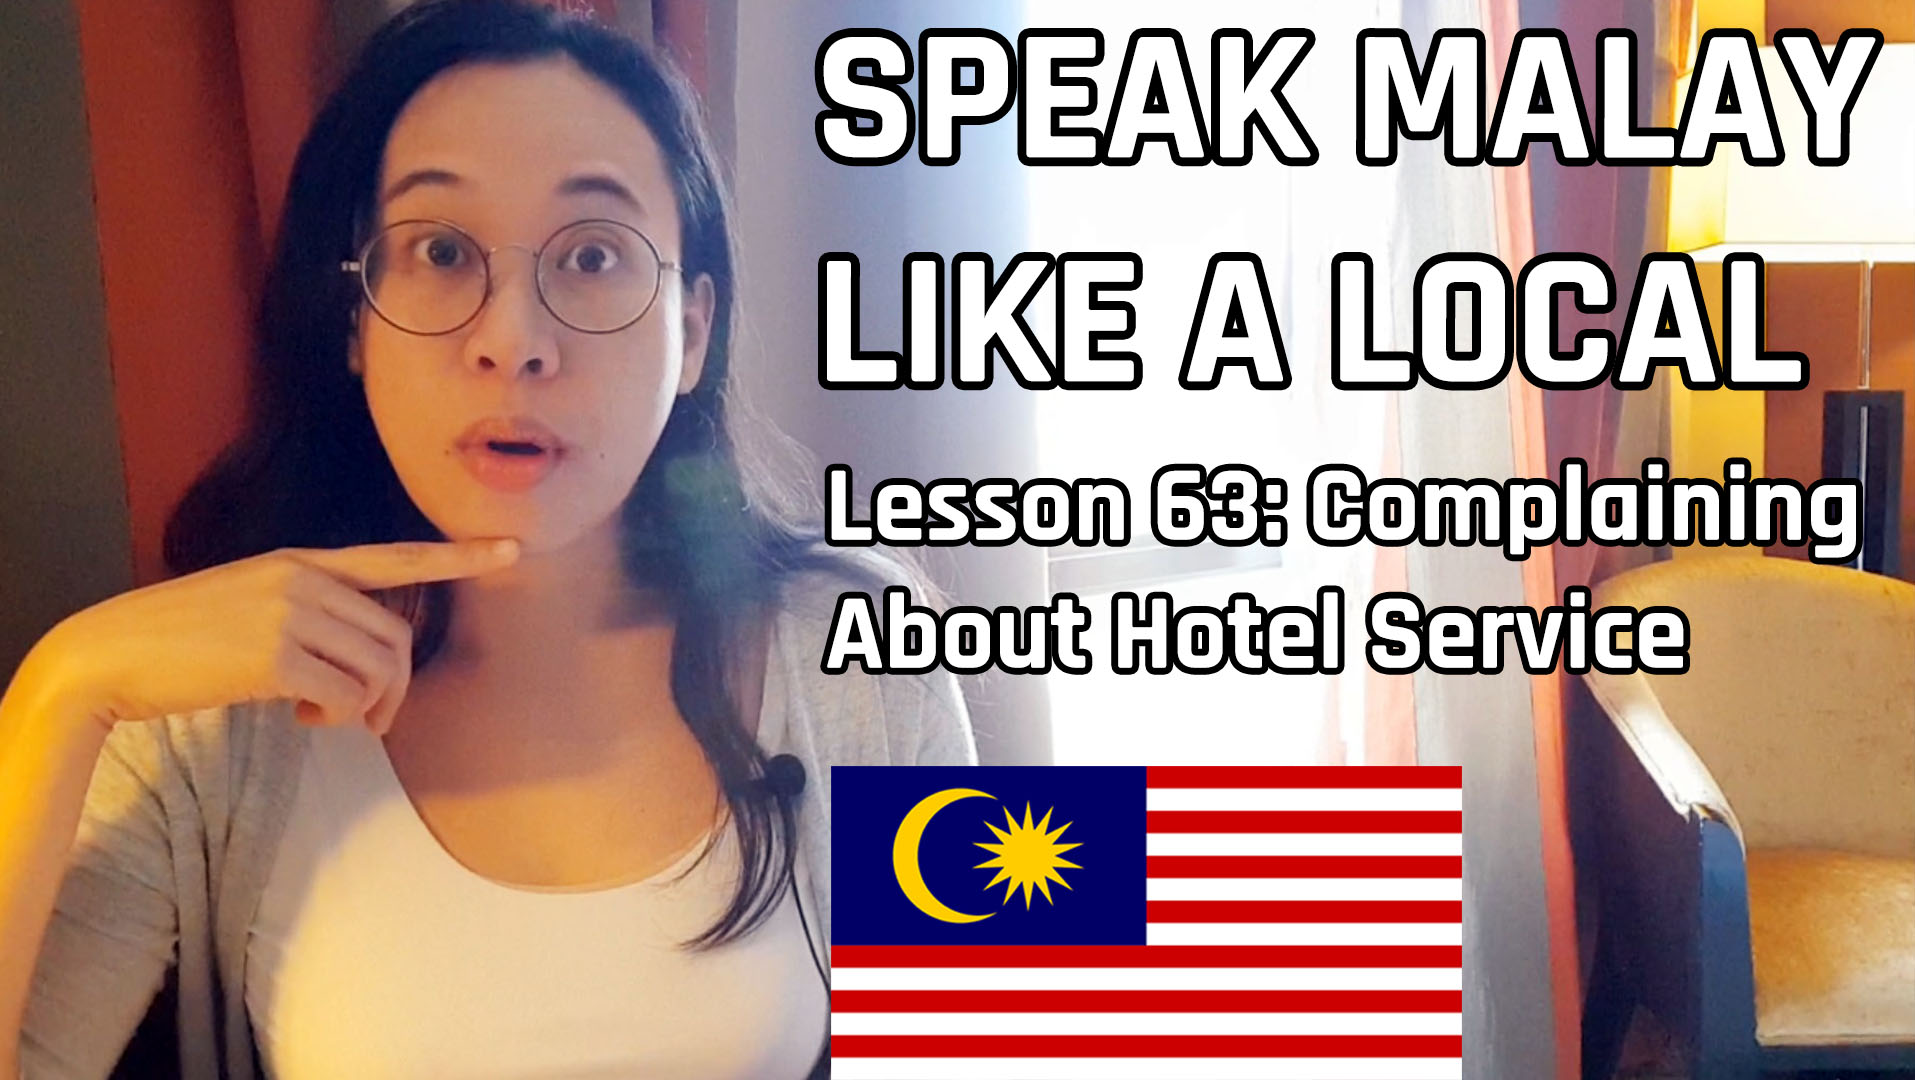 Speak Malay Like a Local – Lesson 63 : How to Complain About a Hotel Service